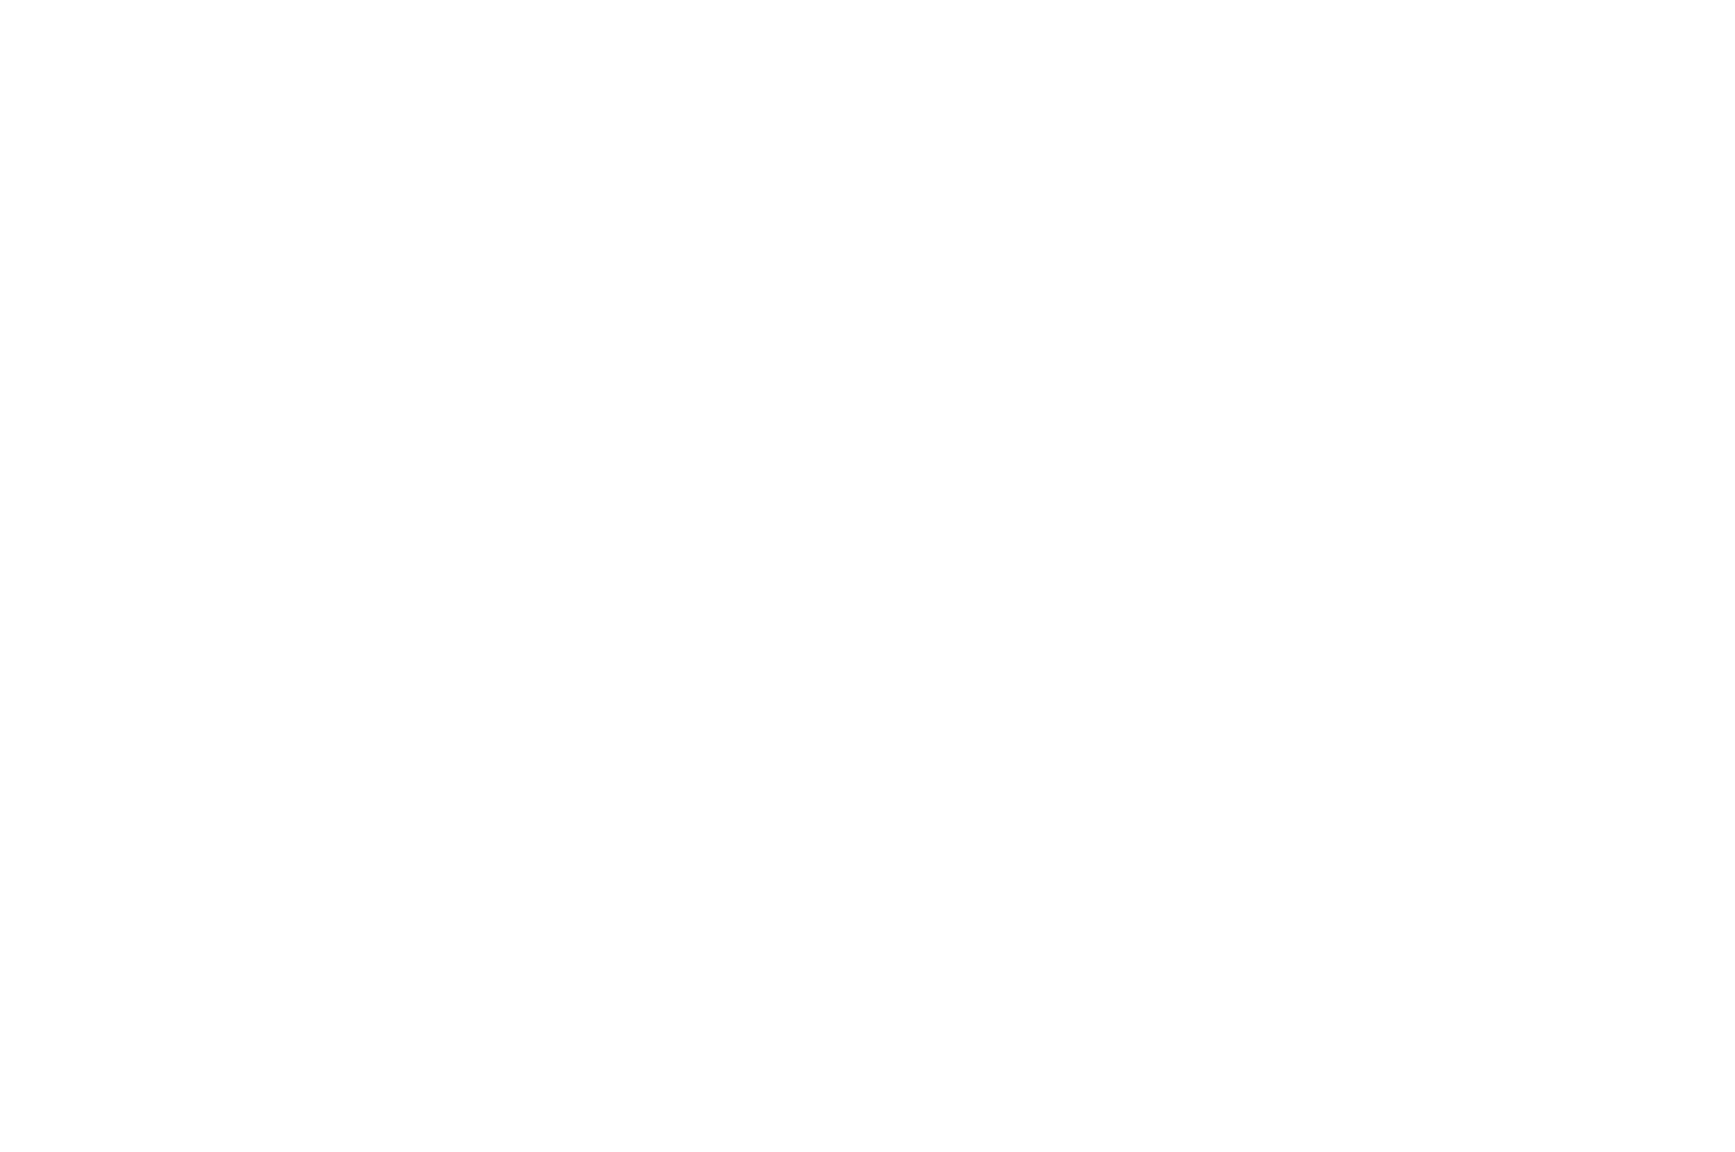 OFFICIAL SELECTION - Iowa Independent Film Festival - 2018.png